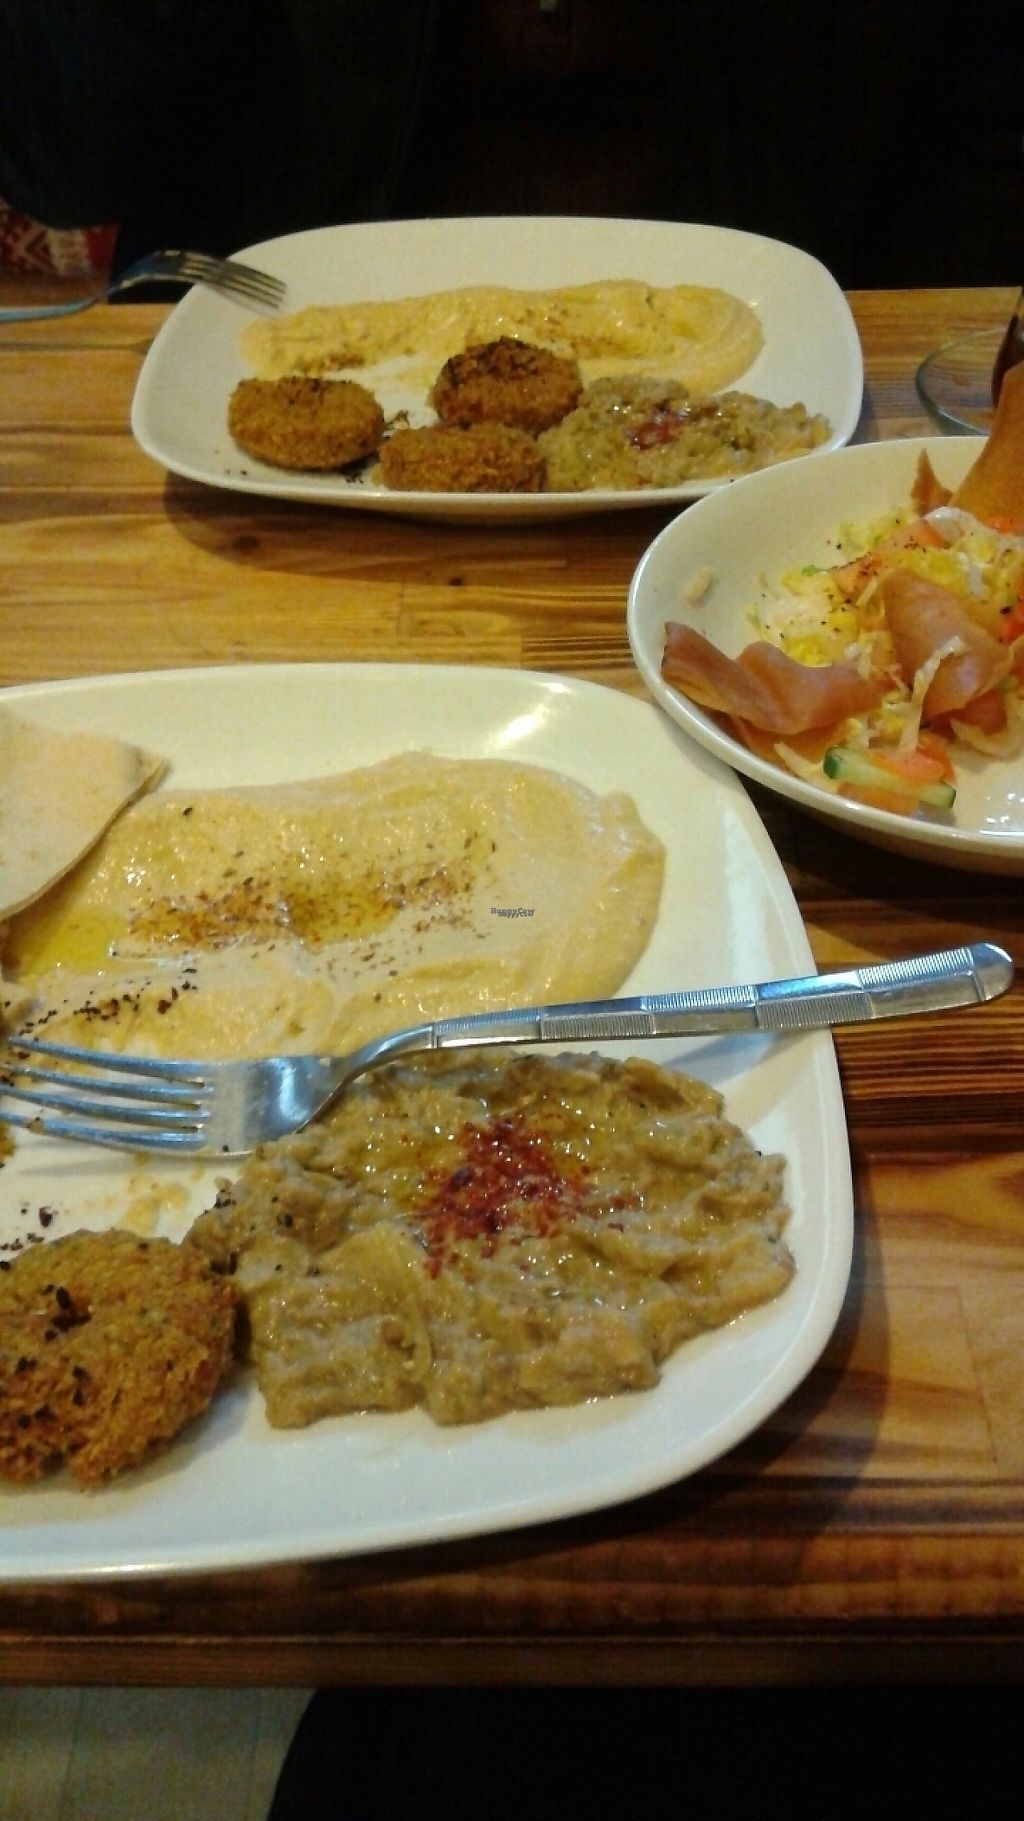 """Photo of Felafel Koy  by <a href=""""/members/profile/Dharlene"""">Dharlene</a> <br/>Variety platters and fatoush salad.  <br/> February 9, 2017  - <a href='/contact/abuse/image/86103/224593'>Report</a>"""